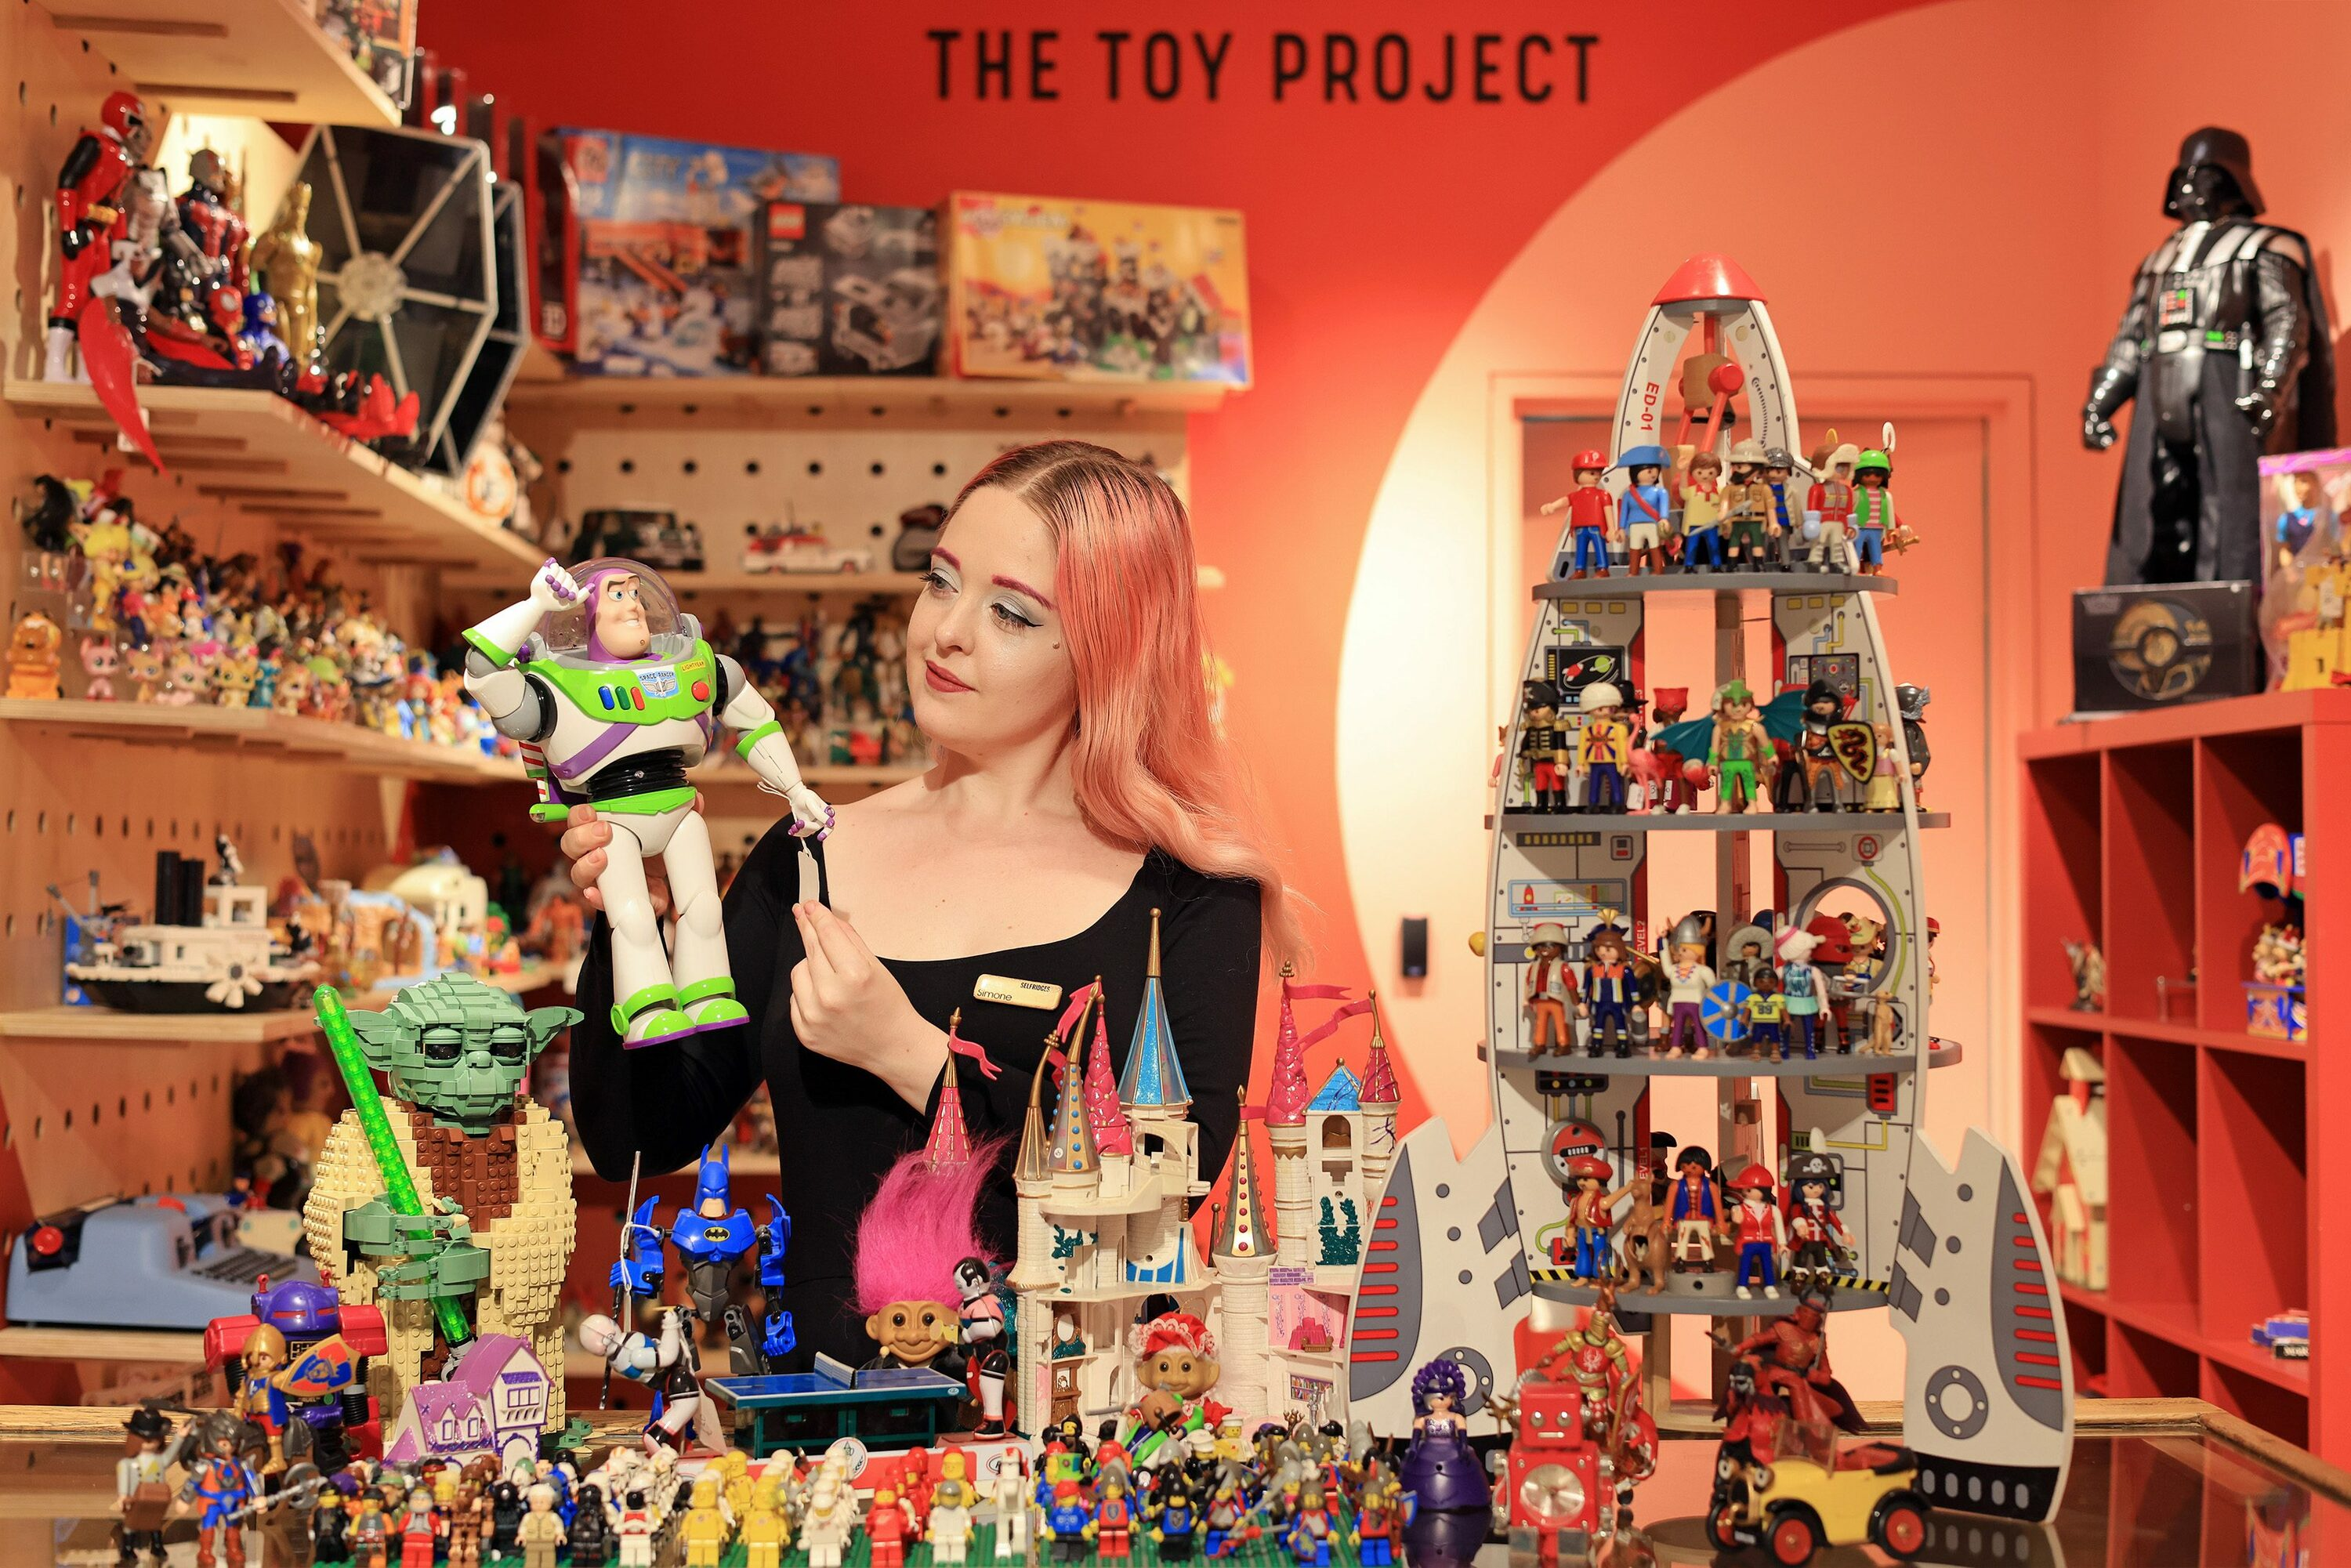 Selfridges has opened a pop-up shop selling pre-loved toys